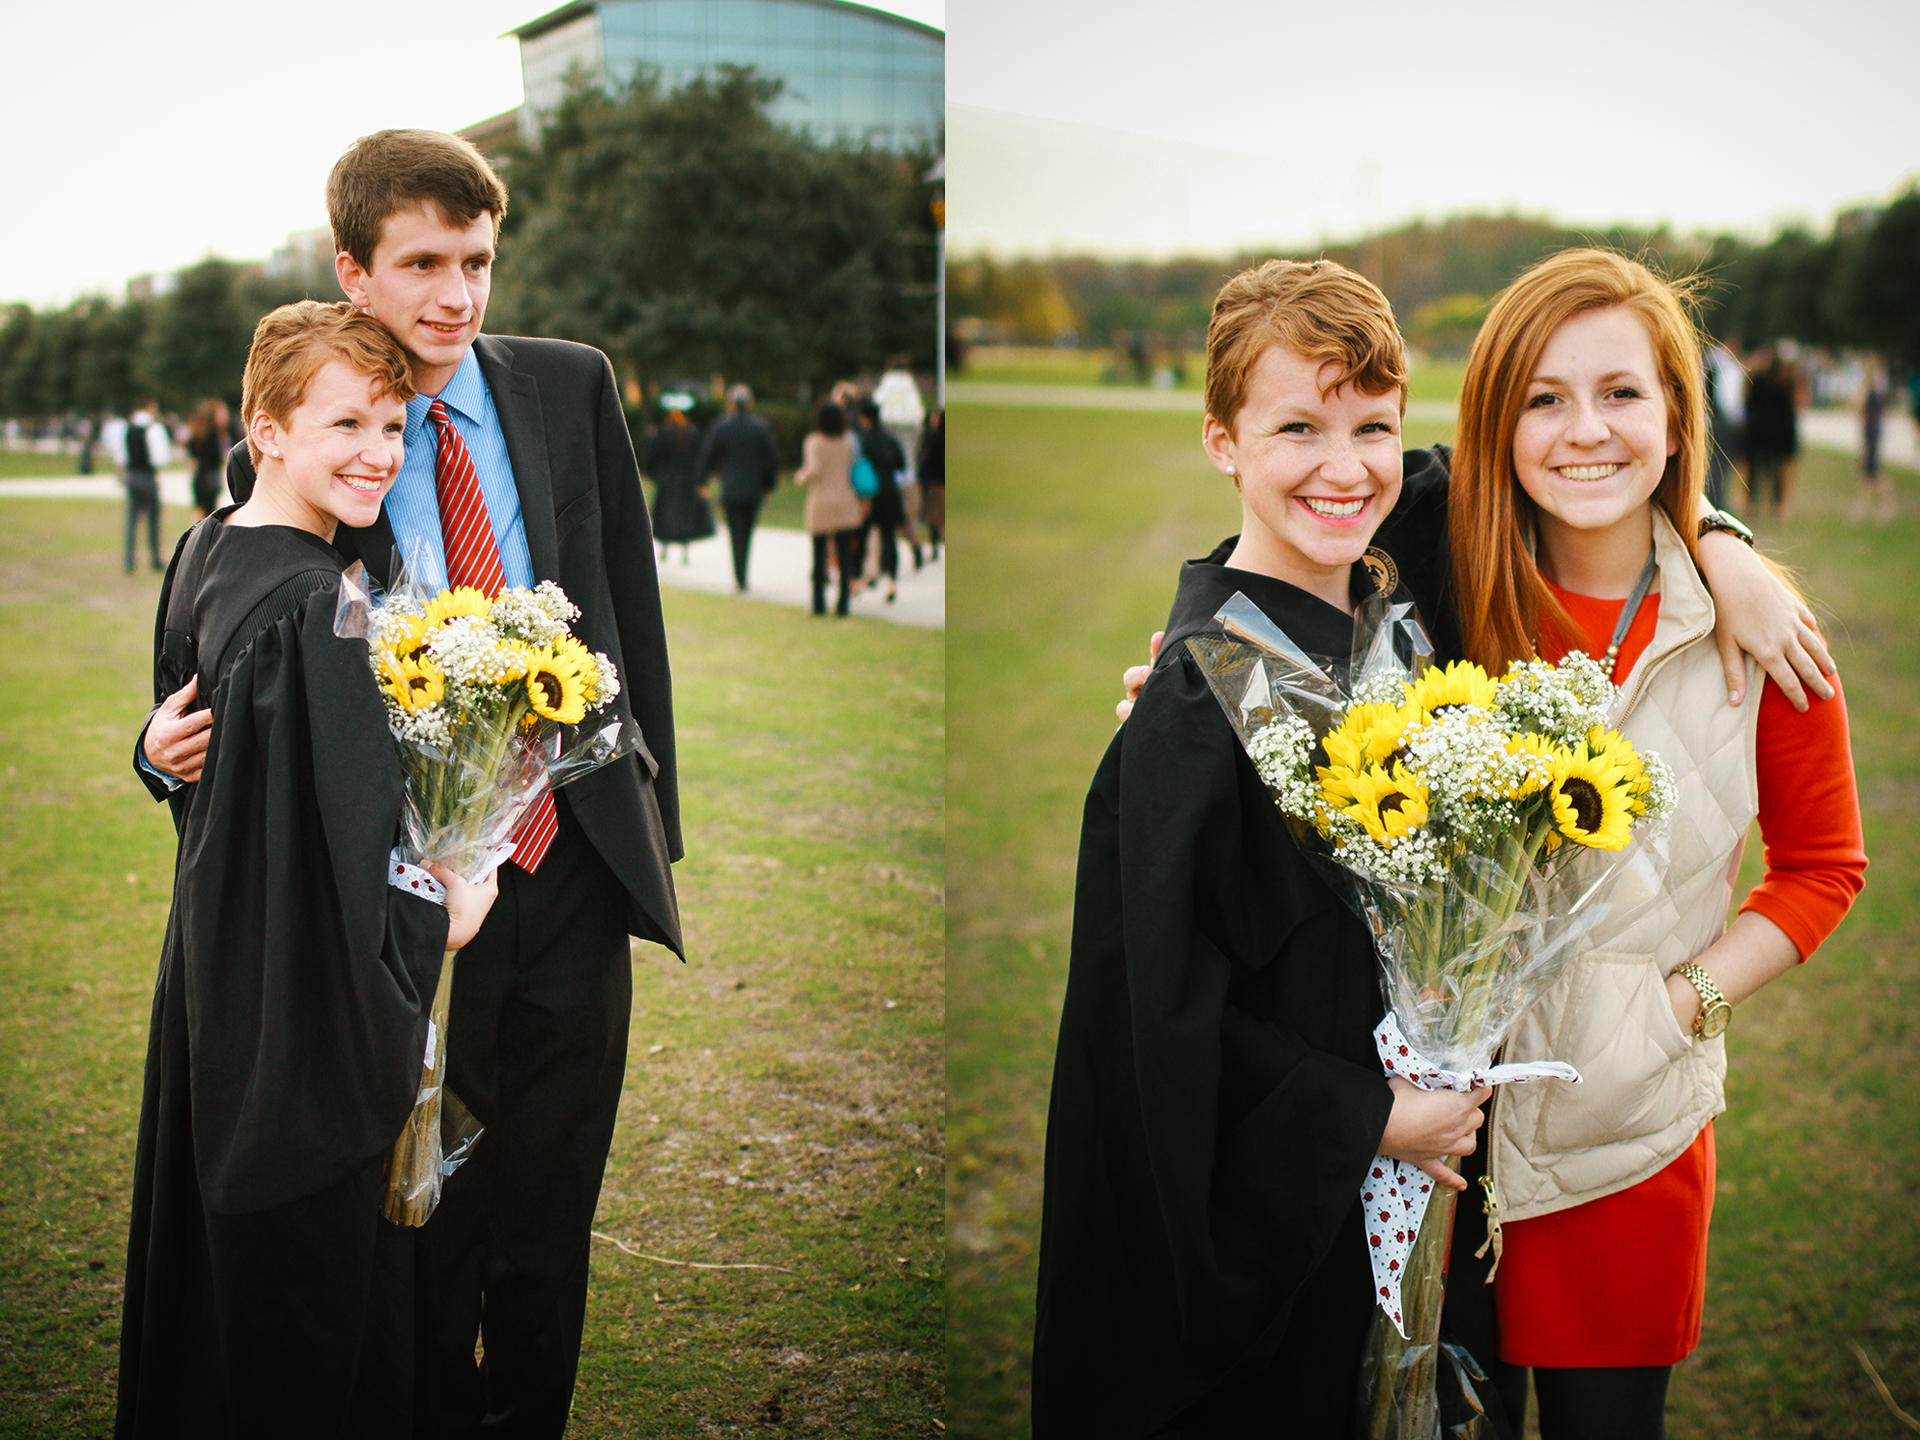 family at graduation in central florida.jpg